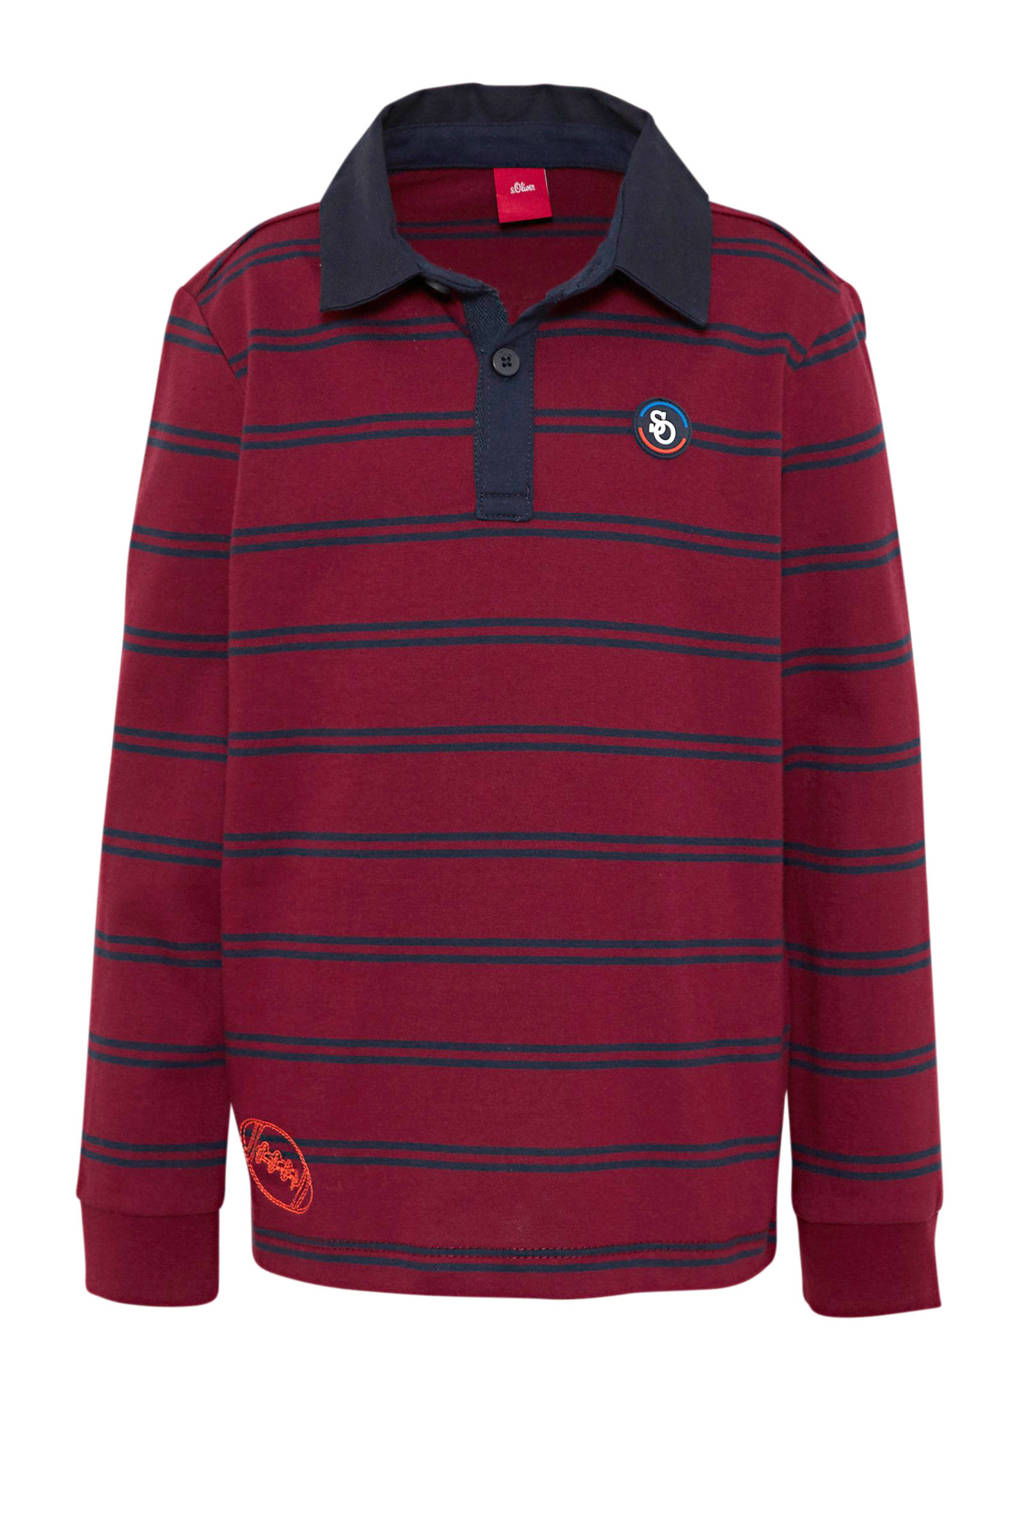 s.Oliver gestreepte polo donkerrood/donkerblauw, Donkerrood/donkerblauw